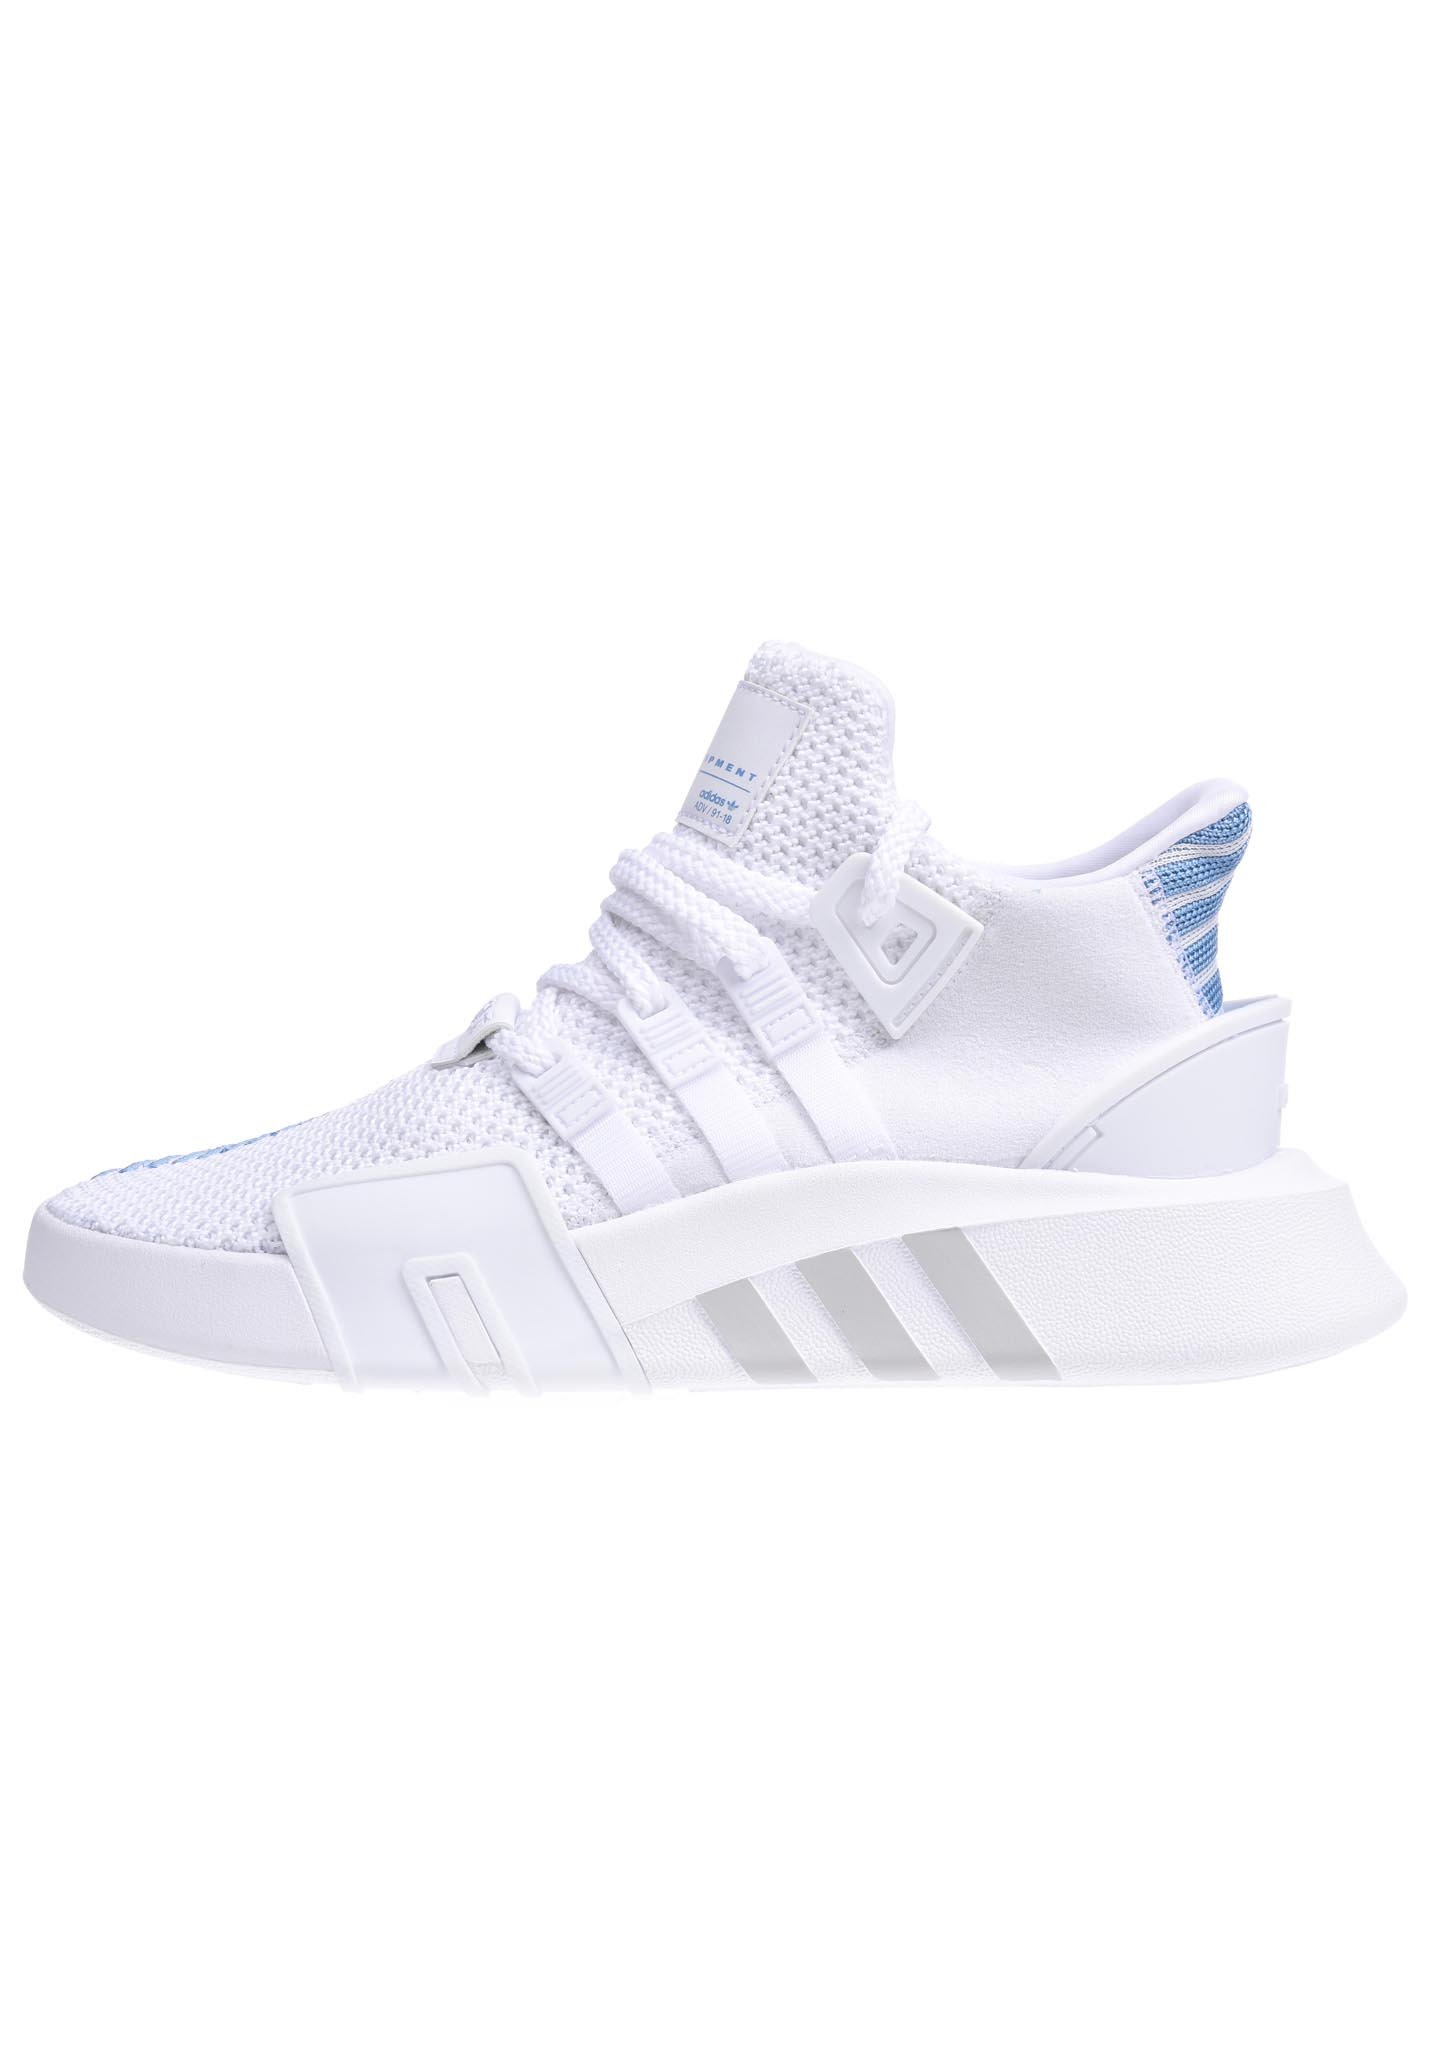 ... get adidas eqt bask adv sneakers for women white planet sports 7fa0f  7eb56 7b84ebbbf